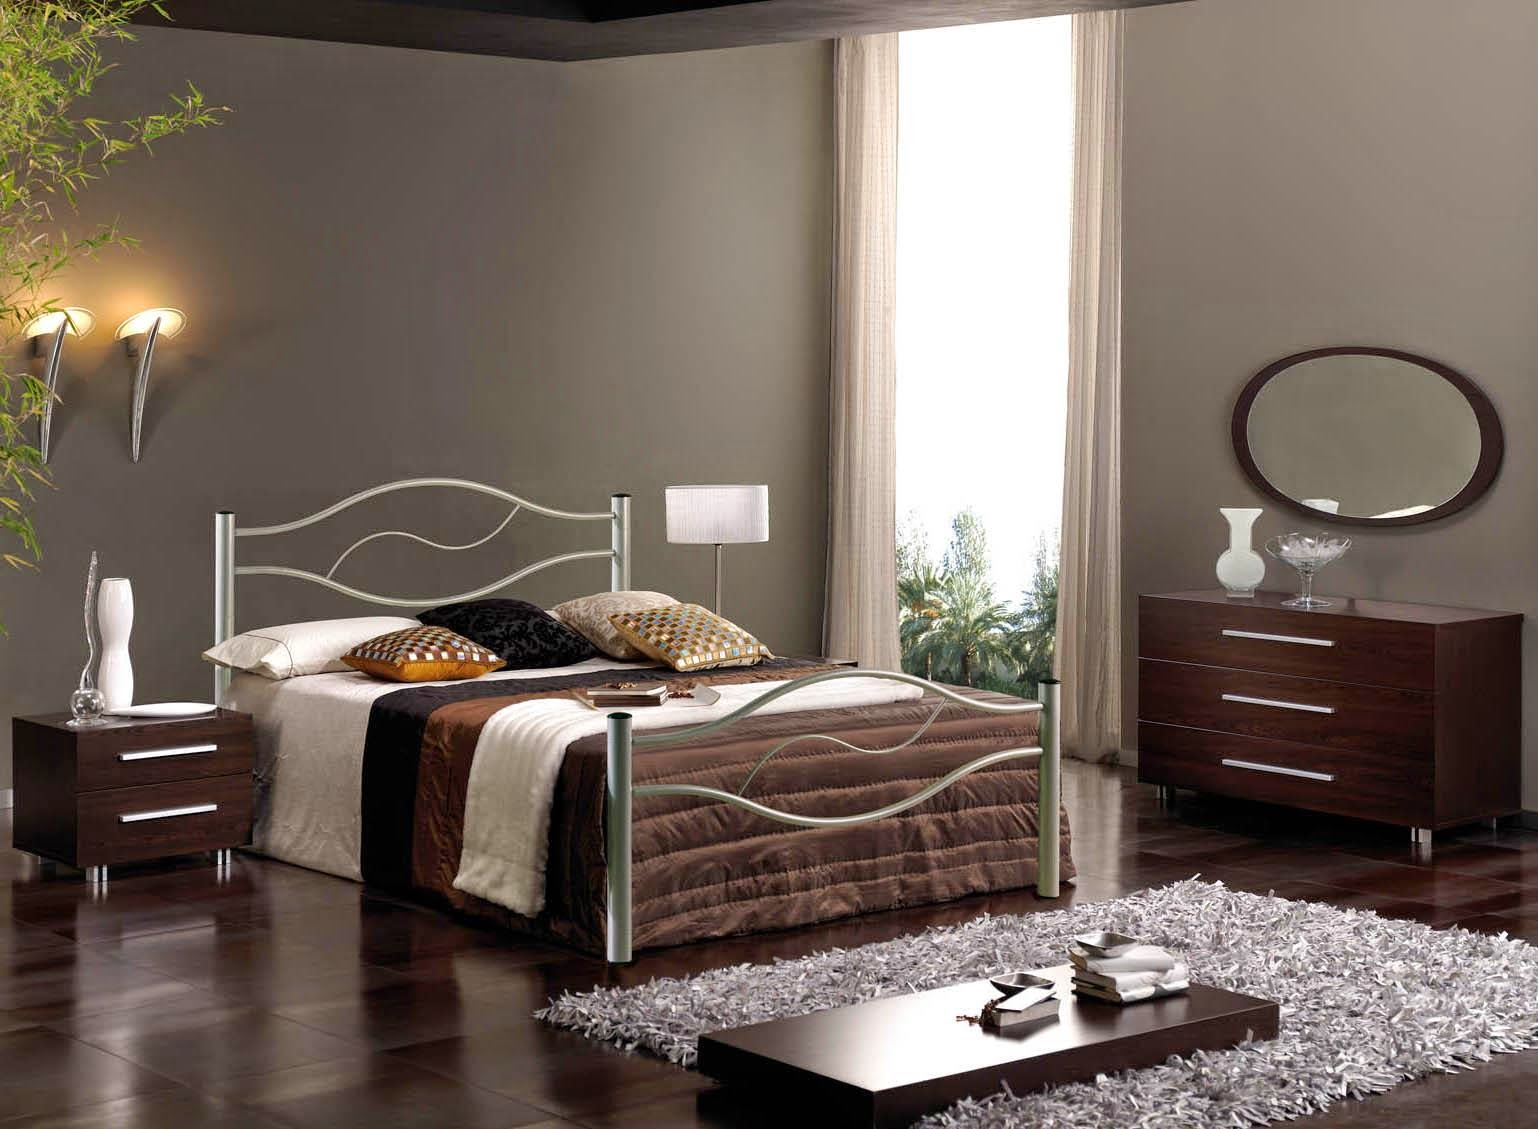 Small Bedroom Lamps Small Bedroom Lighting Ideas The Interior Designs